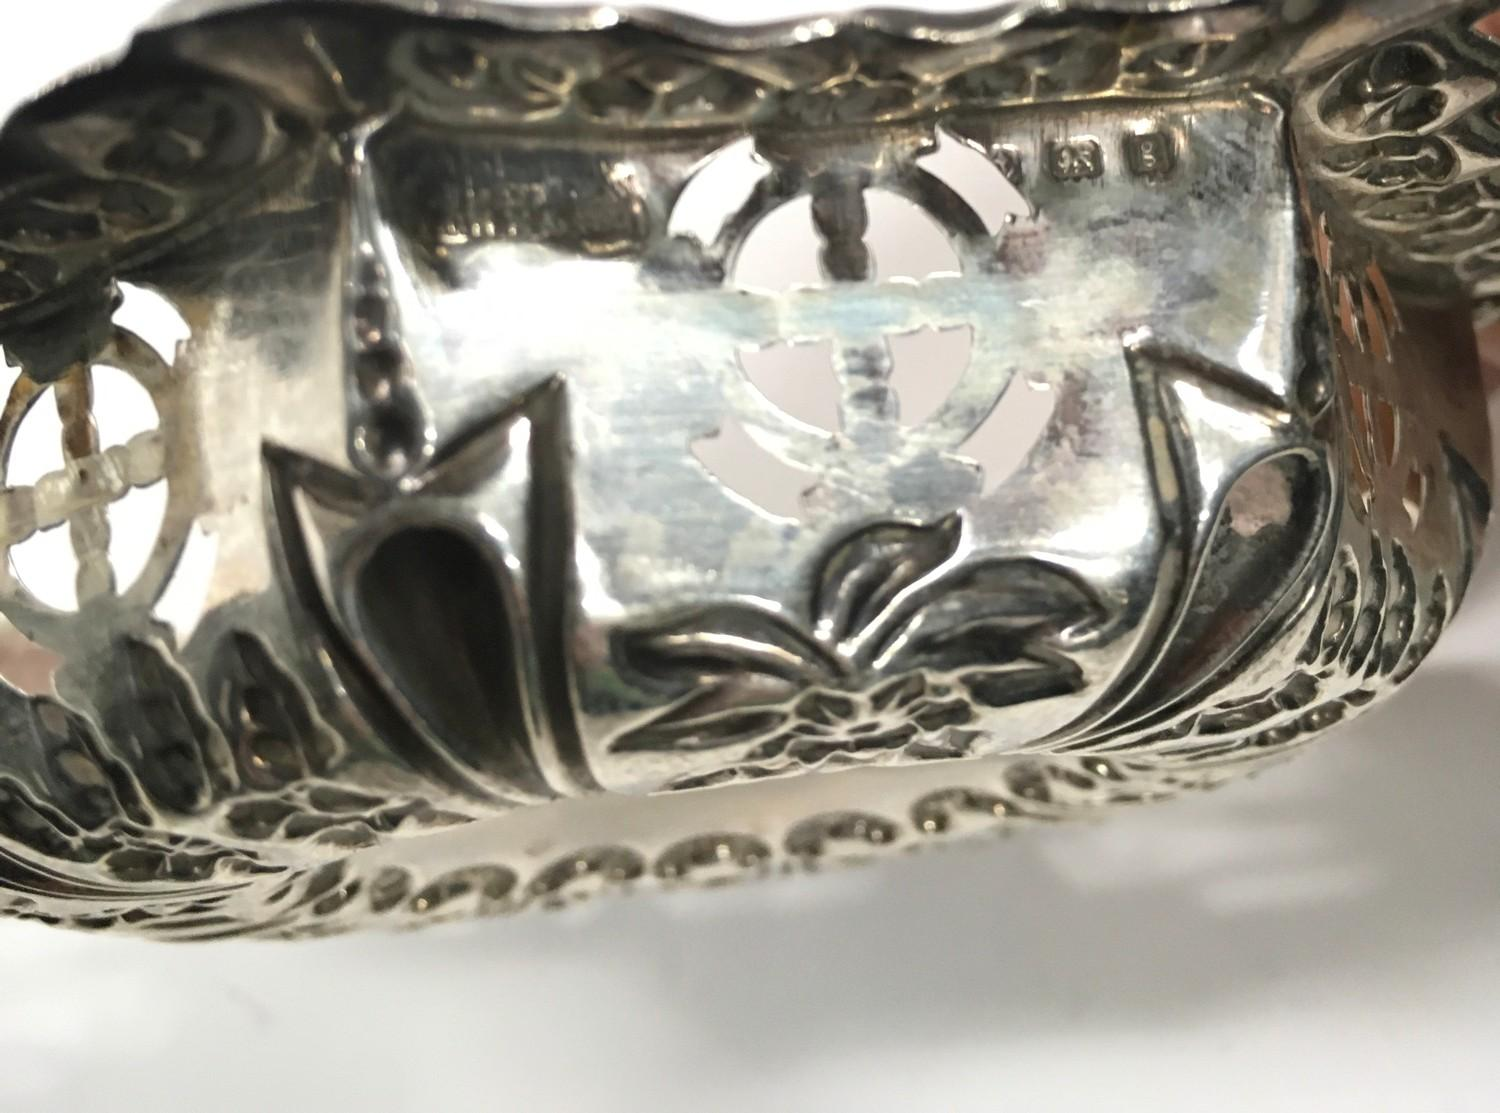 Silver Hallmarked Repousse Dish in Hexagonal Form together with a Silver Hallmarked Repousse Pin - Image 4 of 4